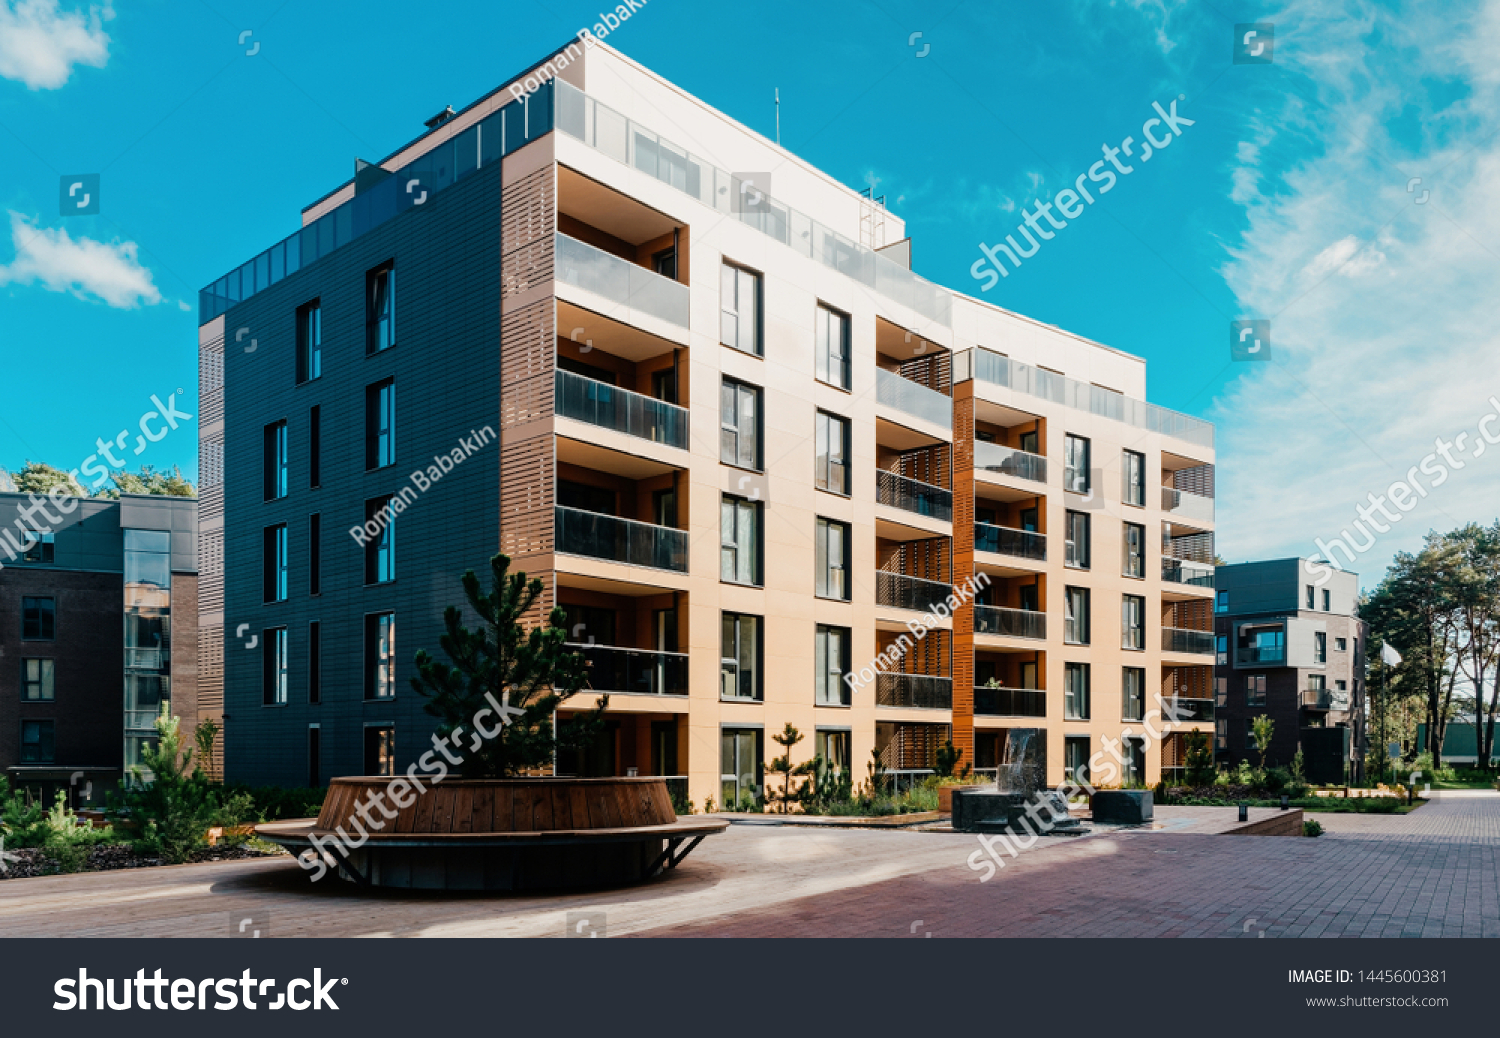 EU Pine tree at architectural complex of residential buildings. And outdoor facilities. #1445600381